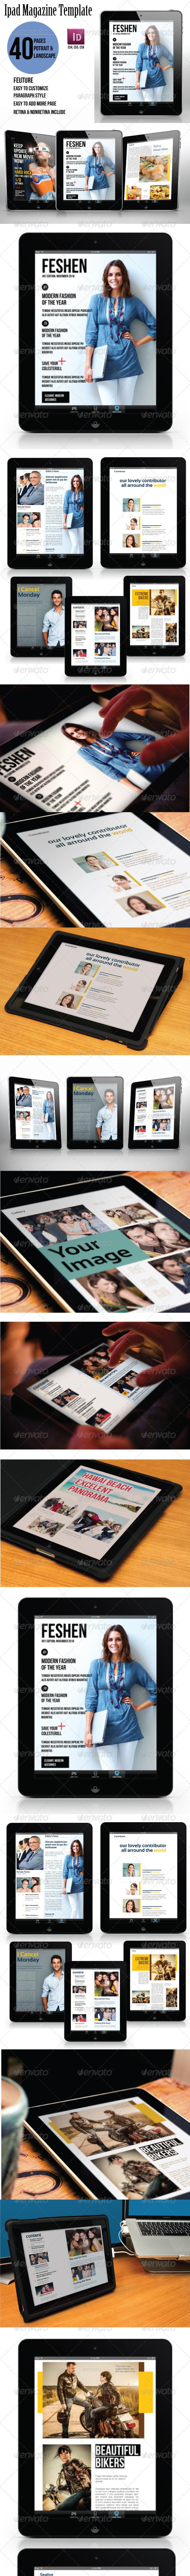 Ipad Magazine Template - Digital Magazines ePublishing